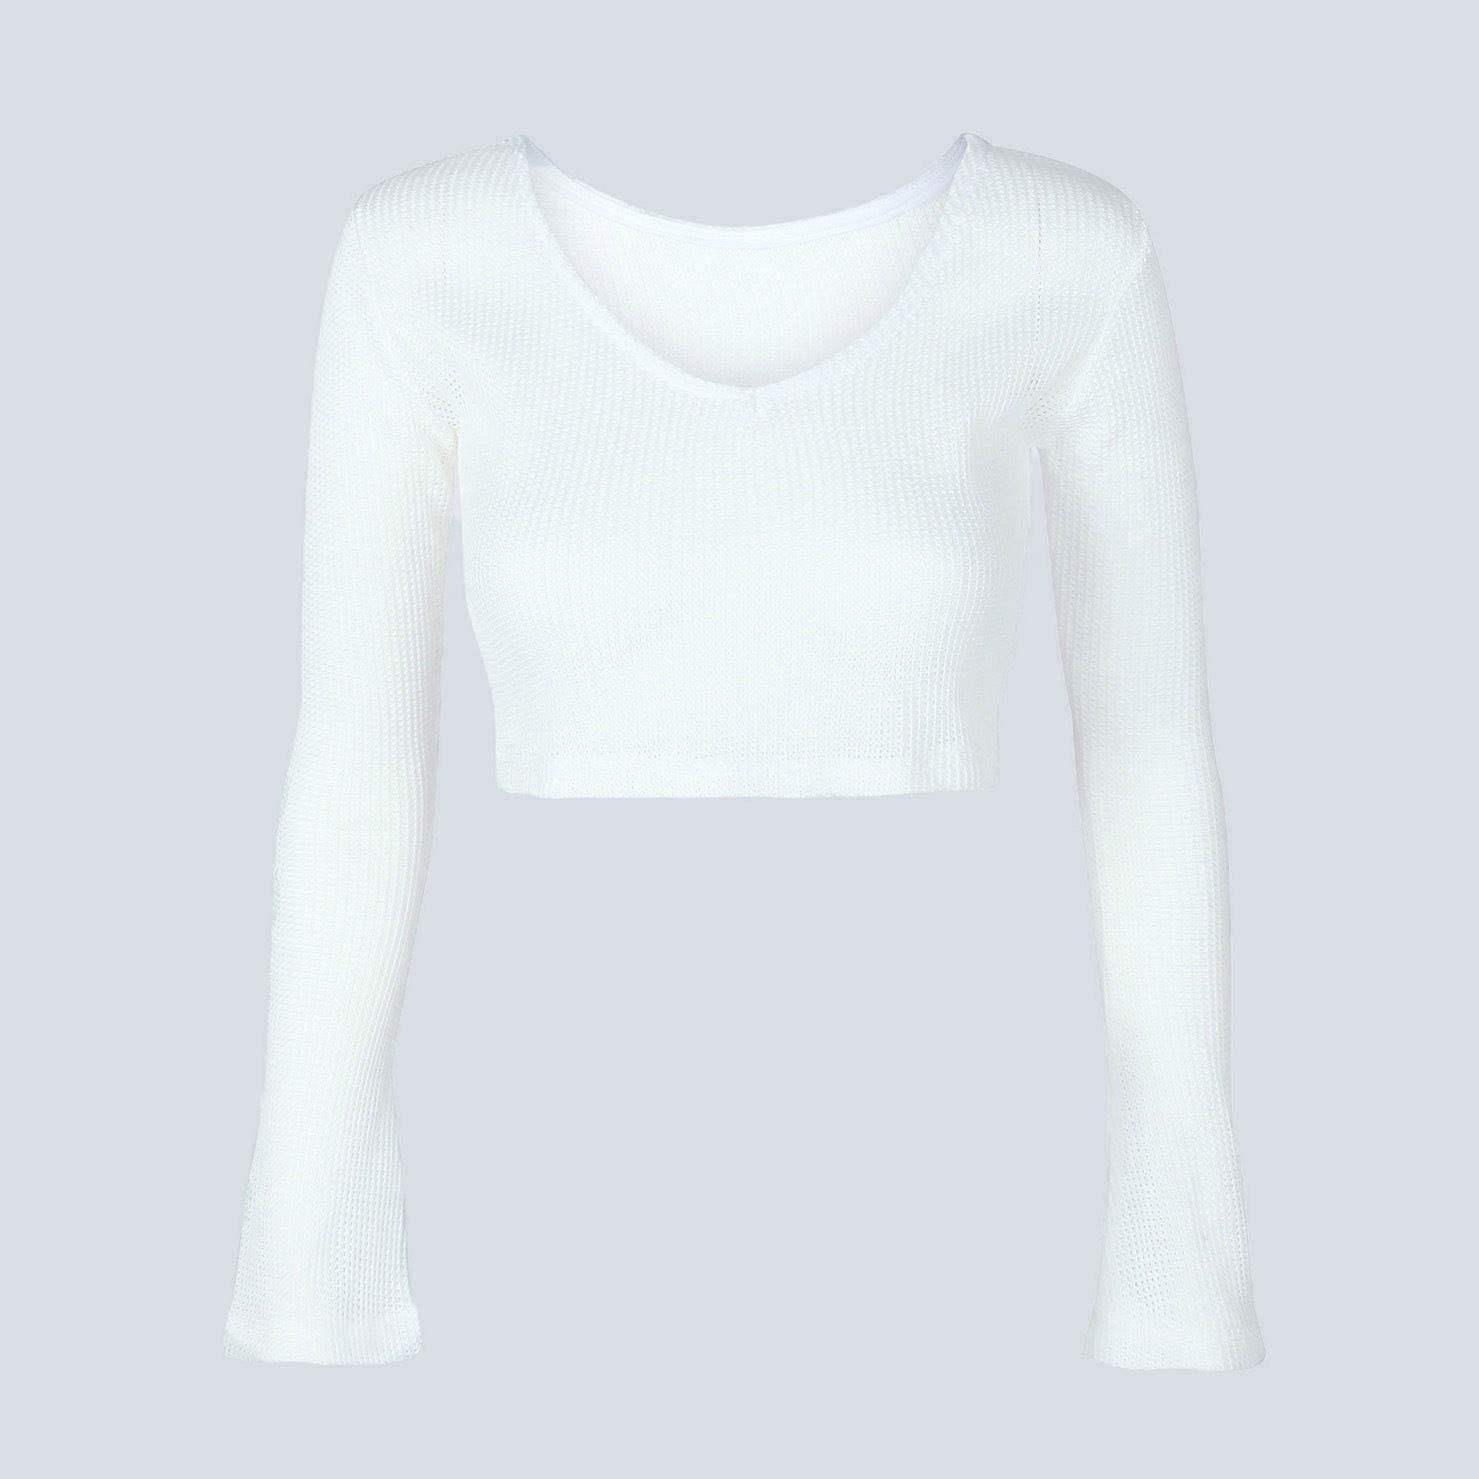 Womens Casual Blouse Tops Sweatshirts Knit Top Sweater,White V-Neck Long Sleeve Knitting Crop Top Knitwear Blouse Sweater Tops